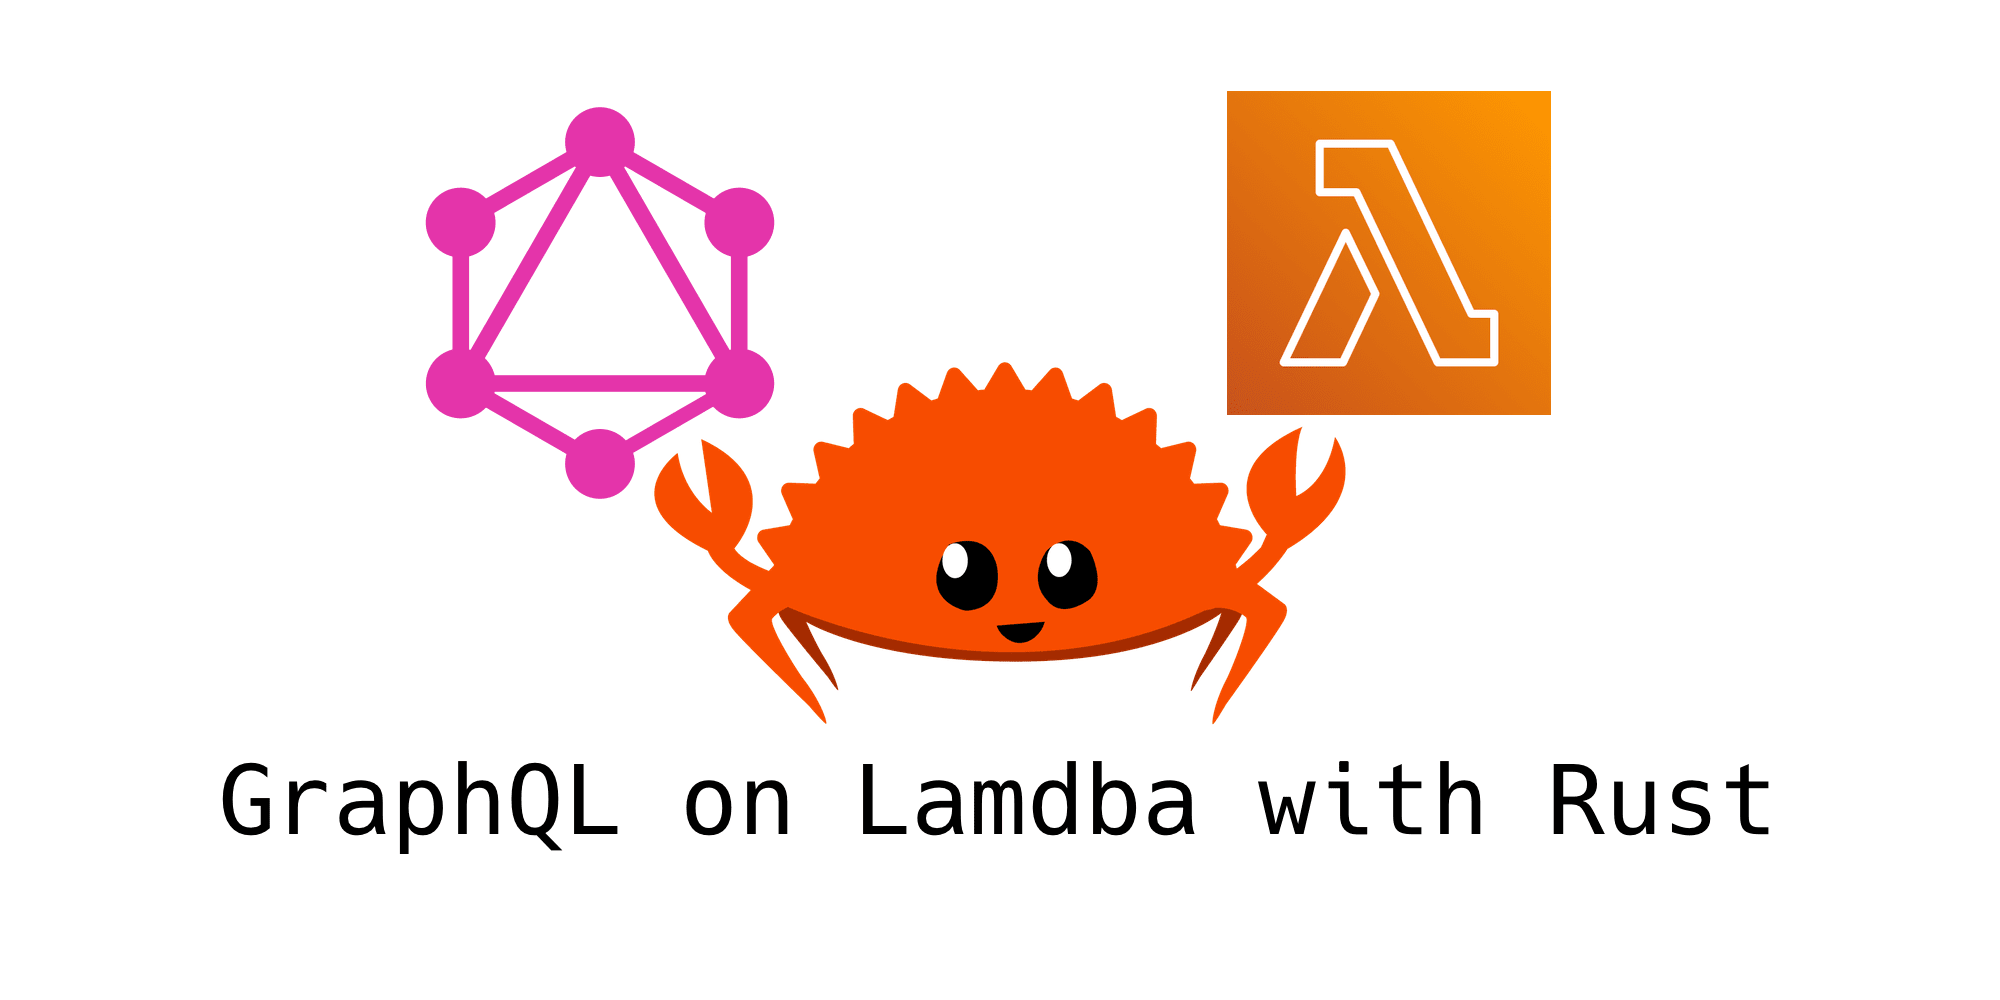 The Rust mascot 'Ferris the Crab' sits beneath the logos for GraphQL and AWS Lambda. Text beneath the images states 'GraphQL on Lambda with Rust'